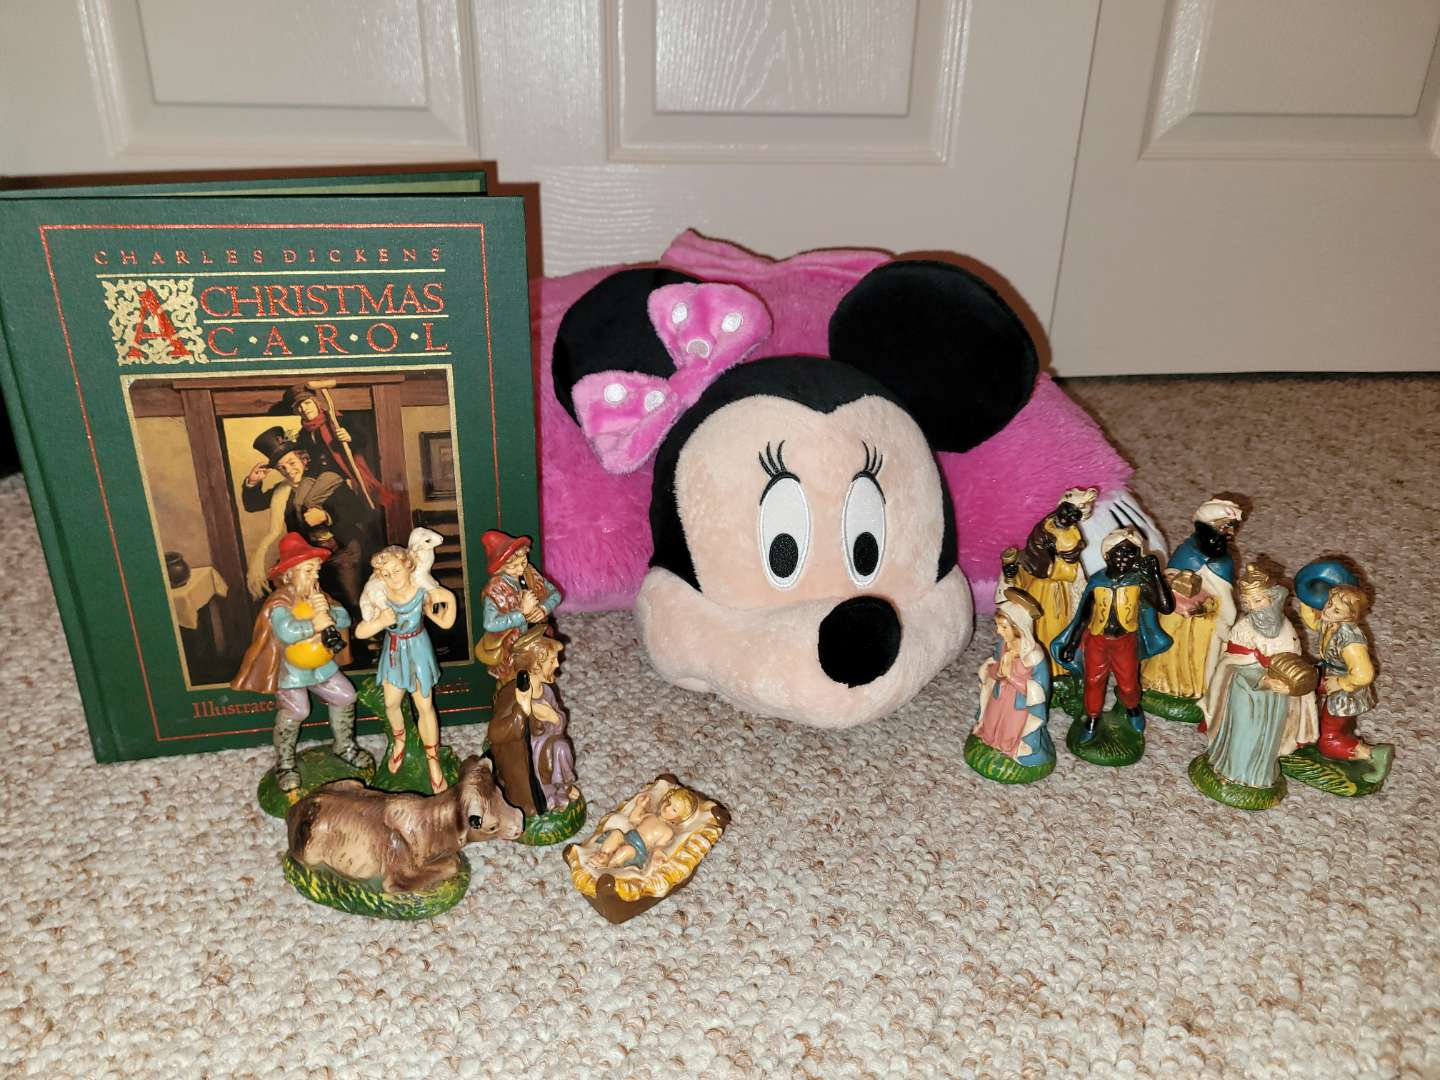 Lot # 63 Minnie Mouse Pillow, A Christmas Carol Book & Vintage Nativity People- Made in Italy